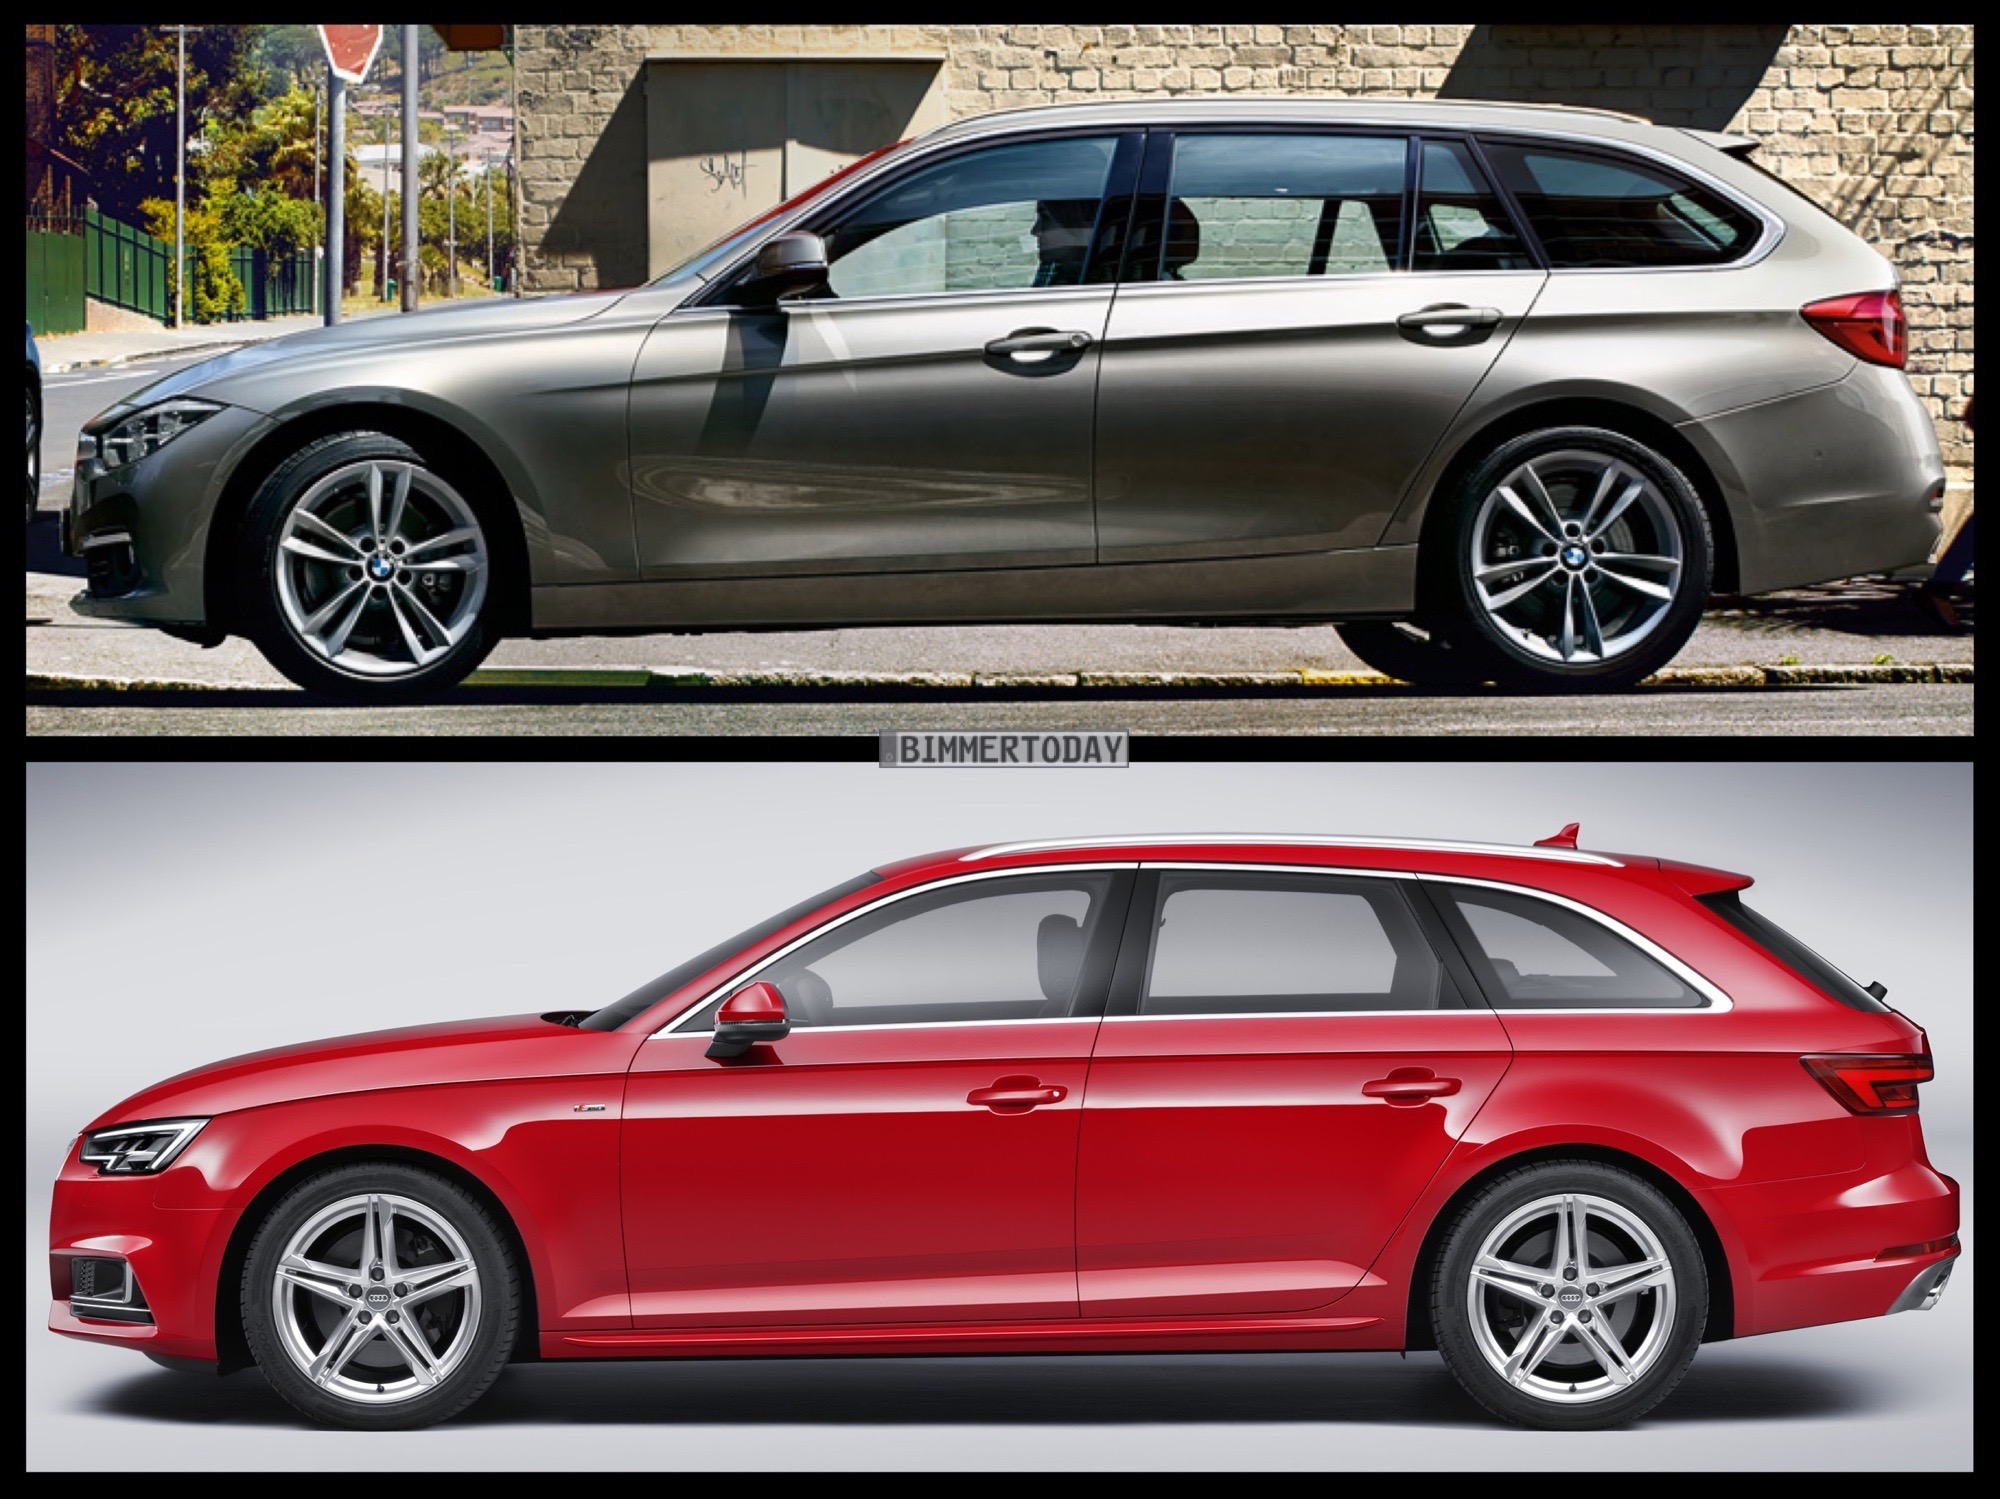 Bmw 3 Series Touring Vs Audi A4 Avant Vs Mercedes Benz C